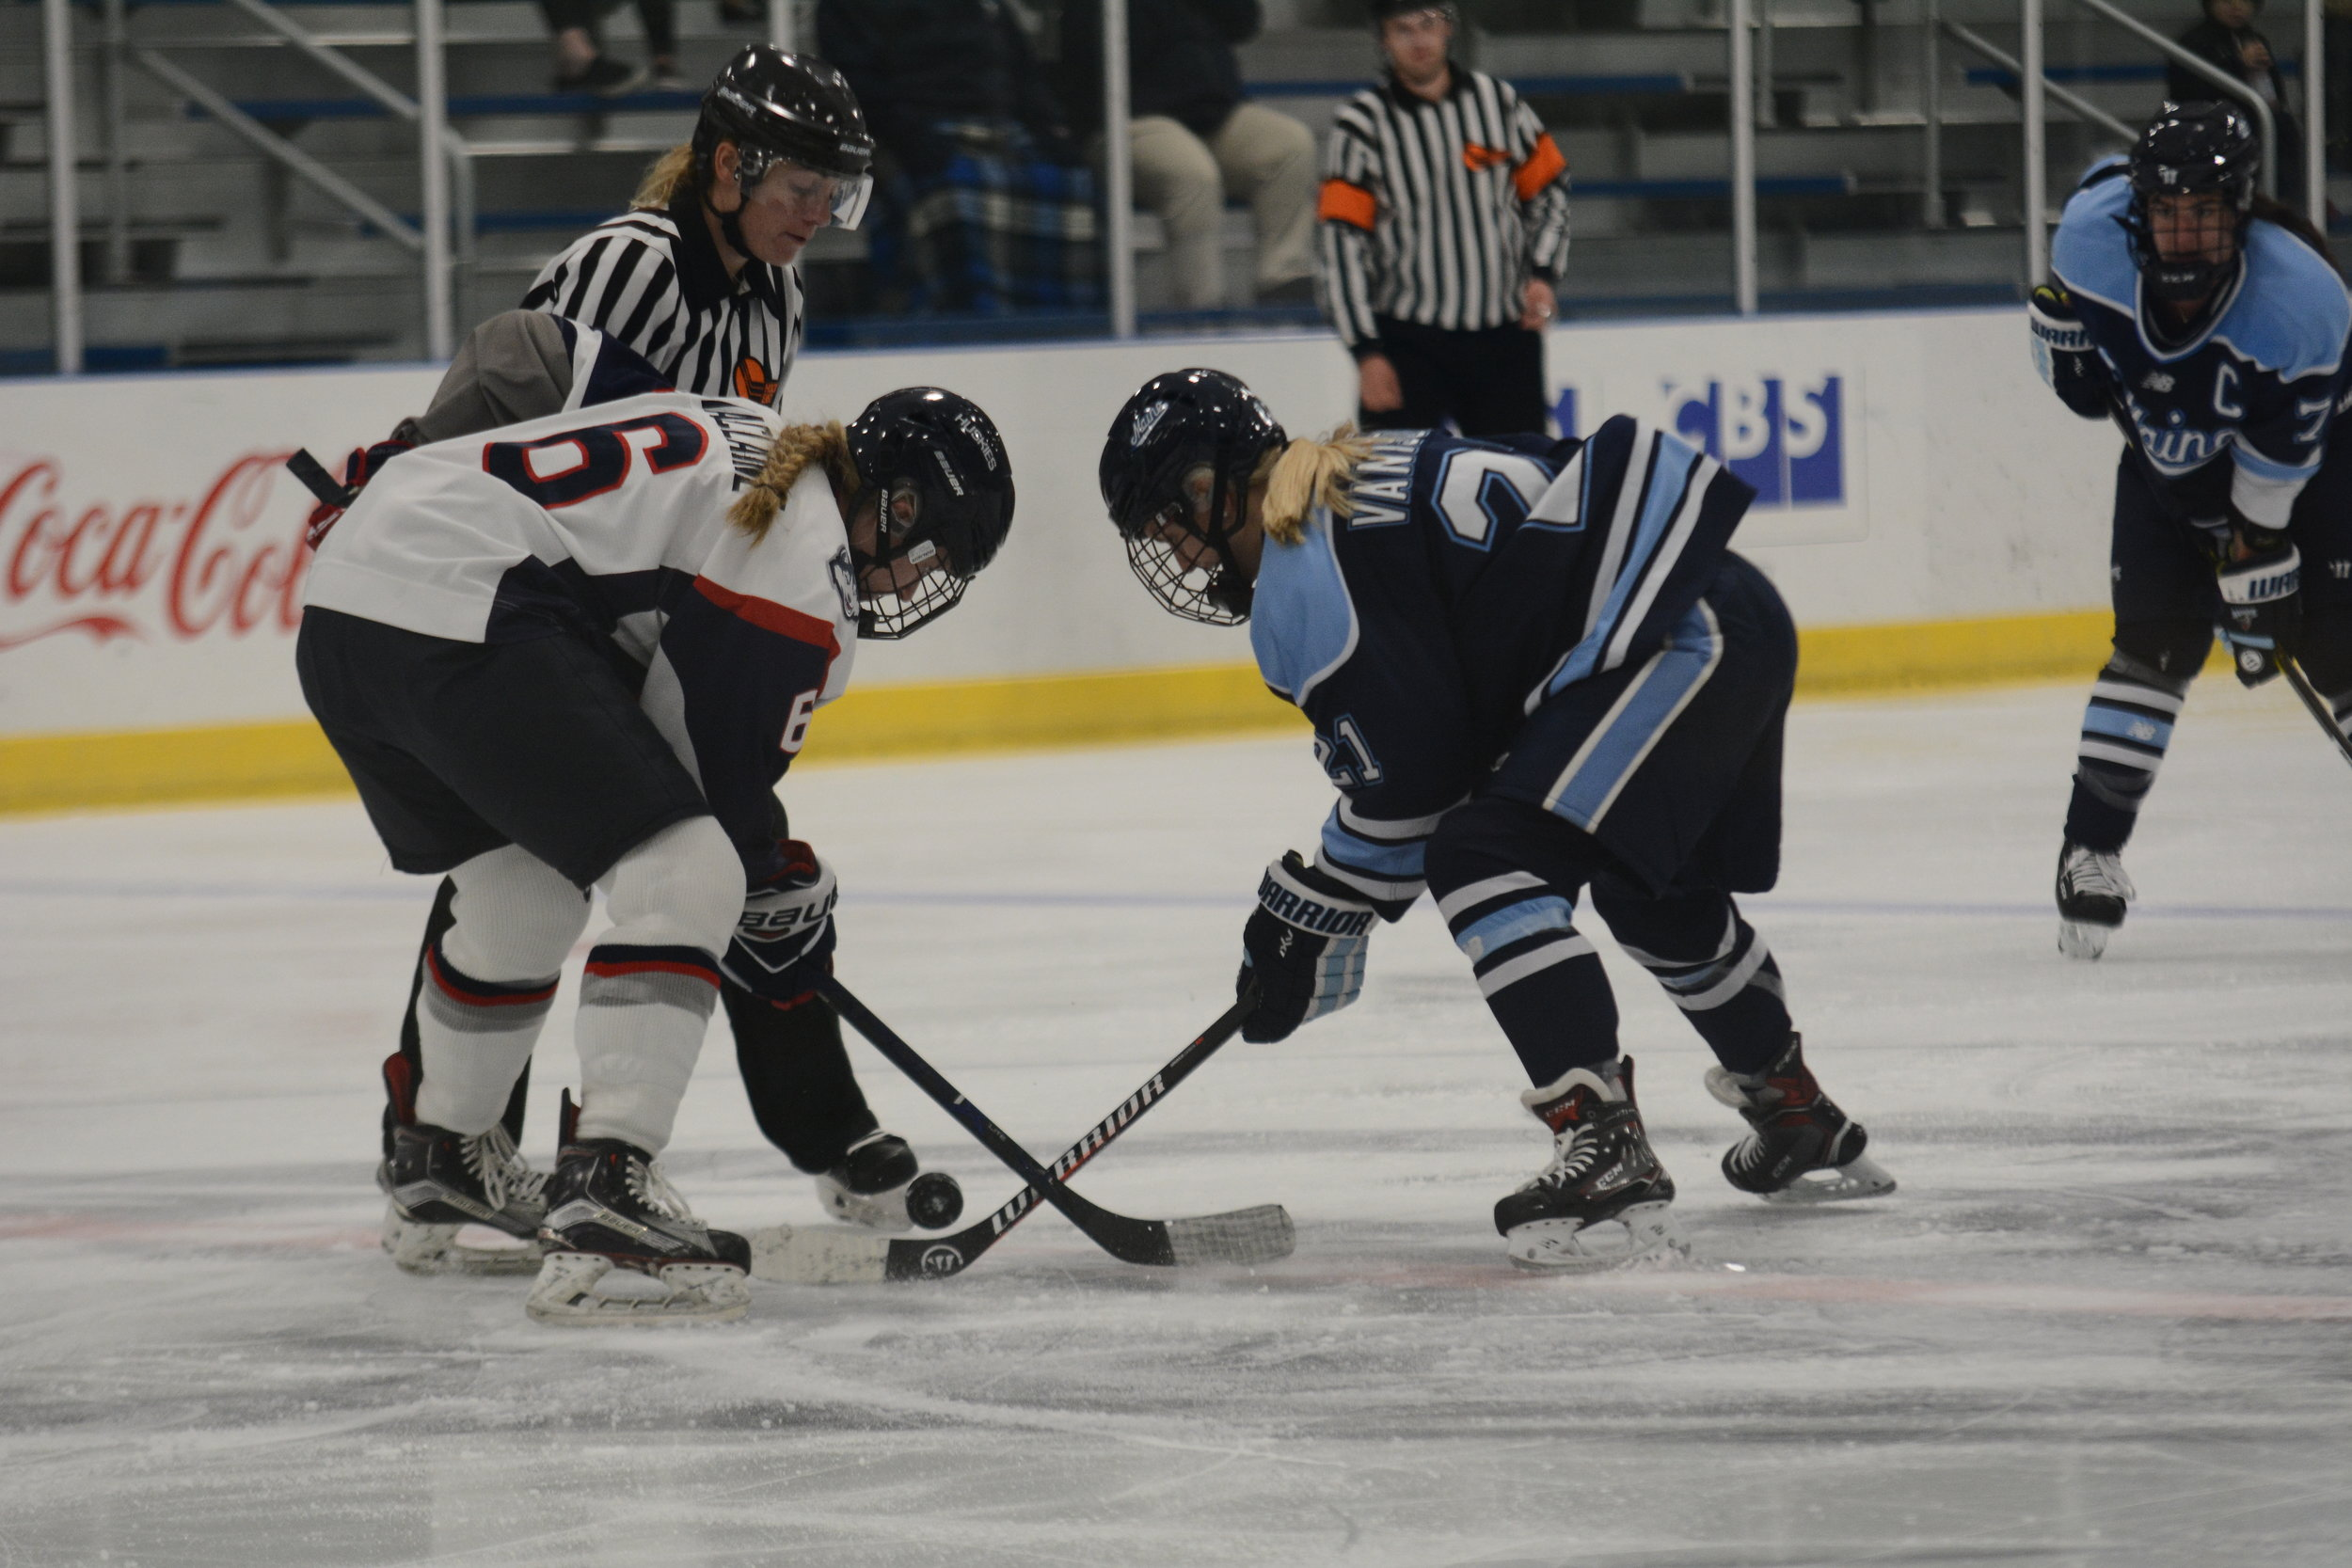 UConn's Nora Maclaine takes a faceoff during the Huskies' game against Maine on Nov.10, 2018. (Eric Wang/ The Daily Campus)